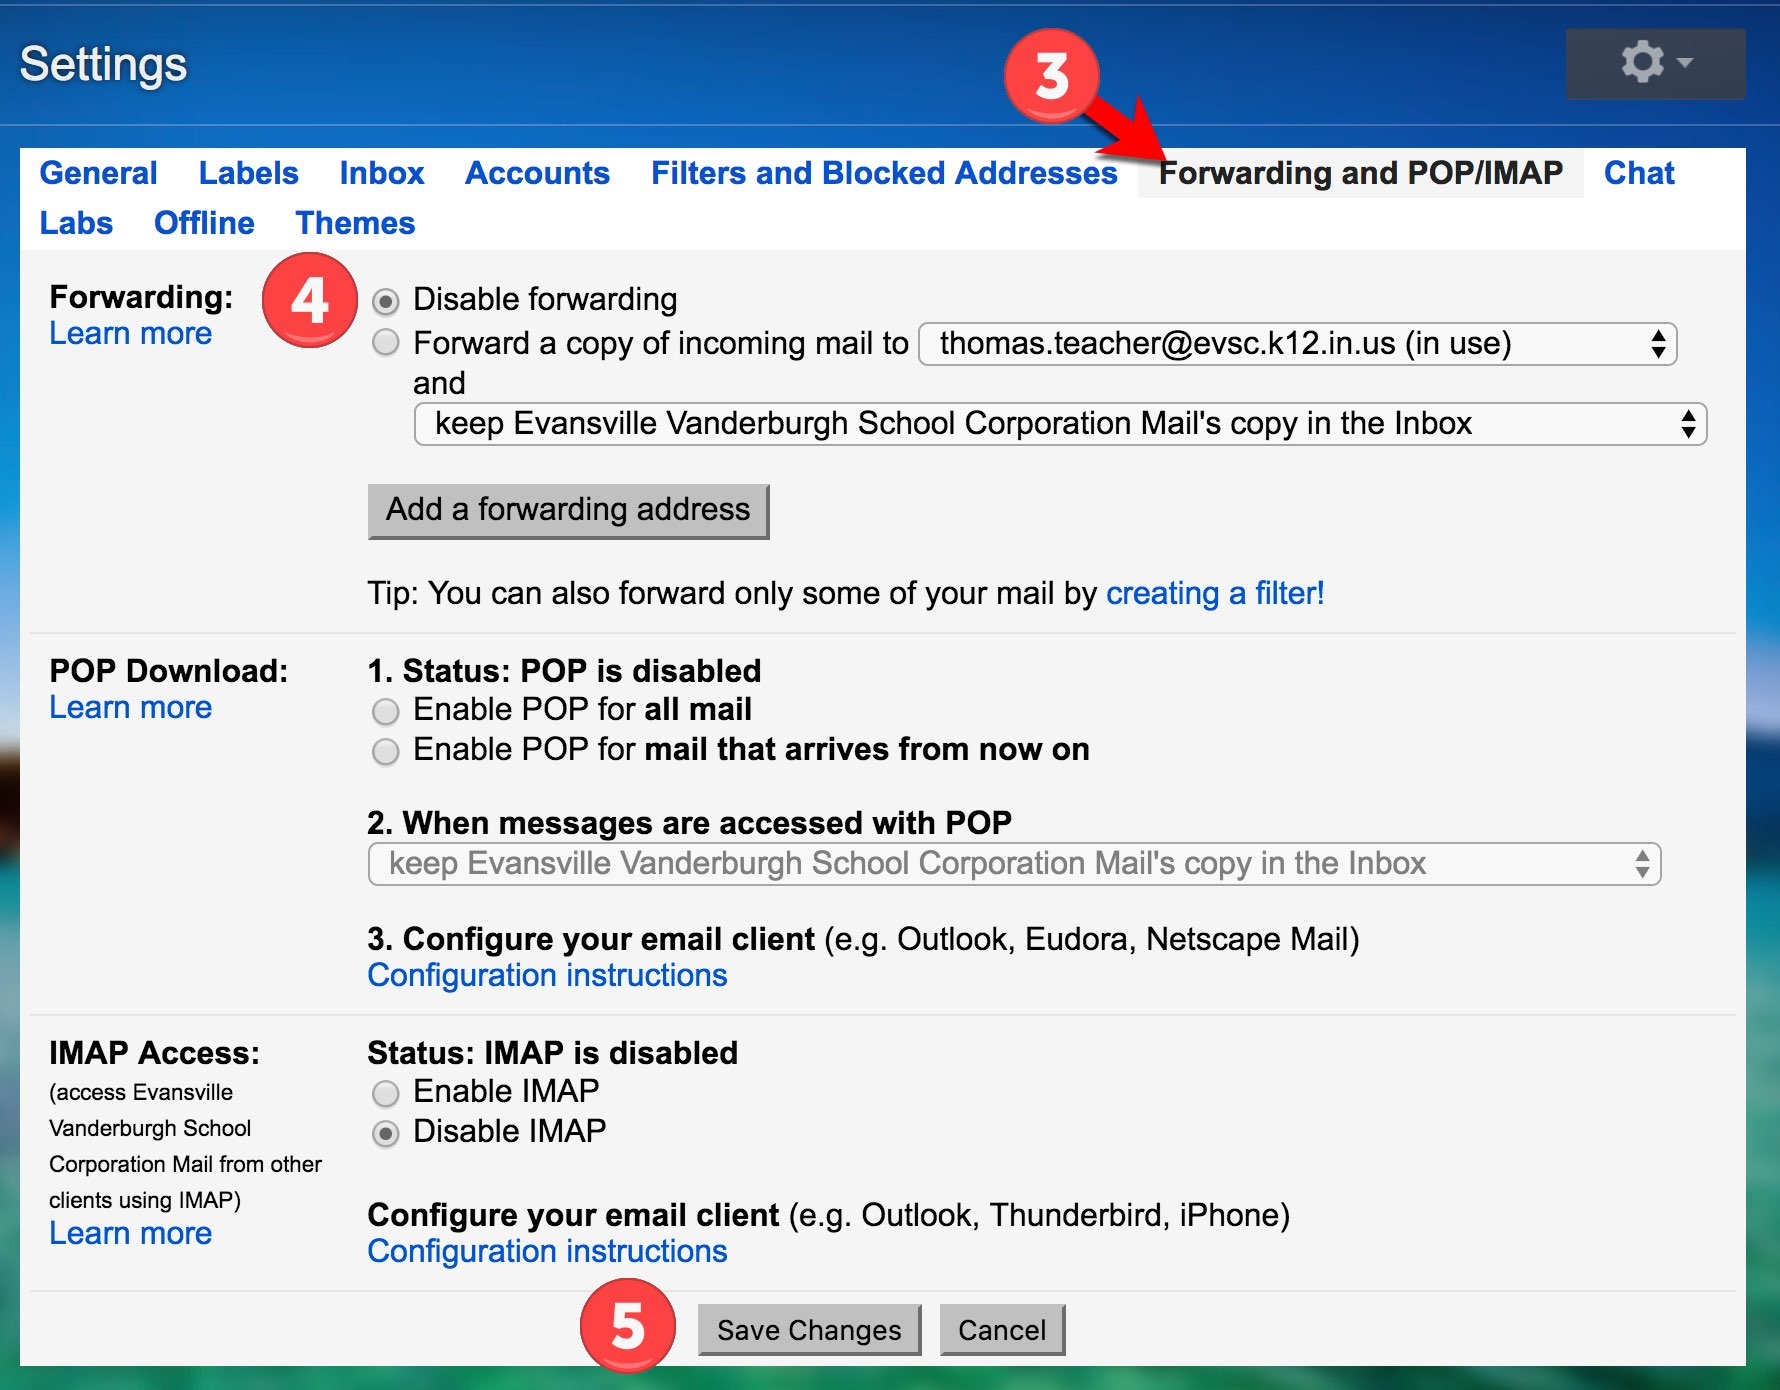 How to turn off forwarding in gmail